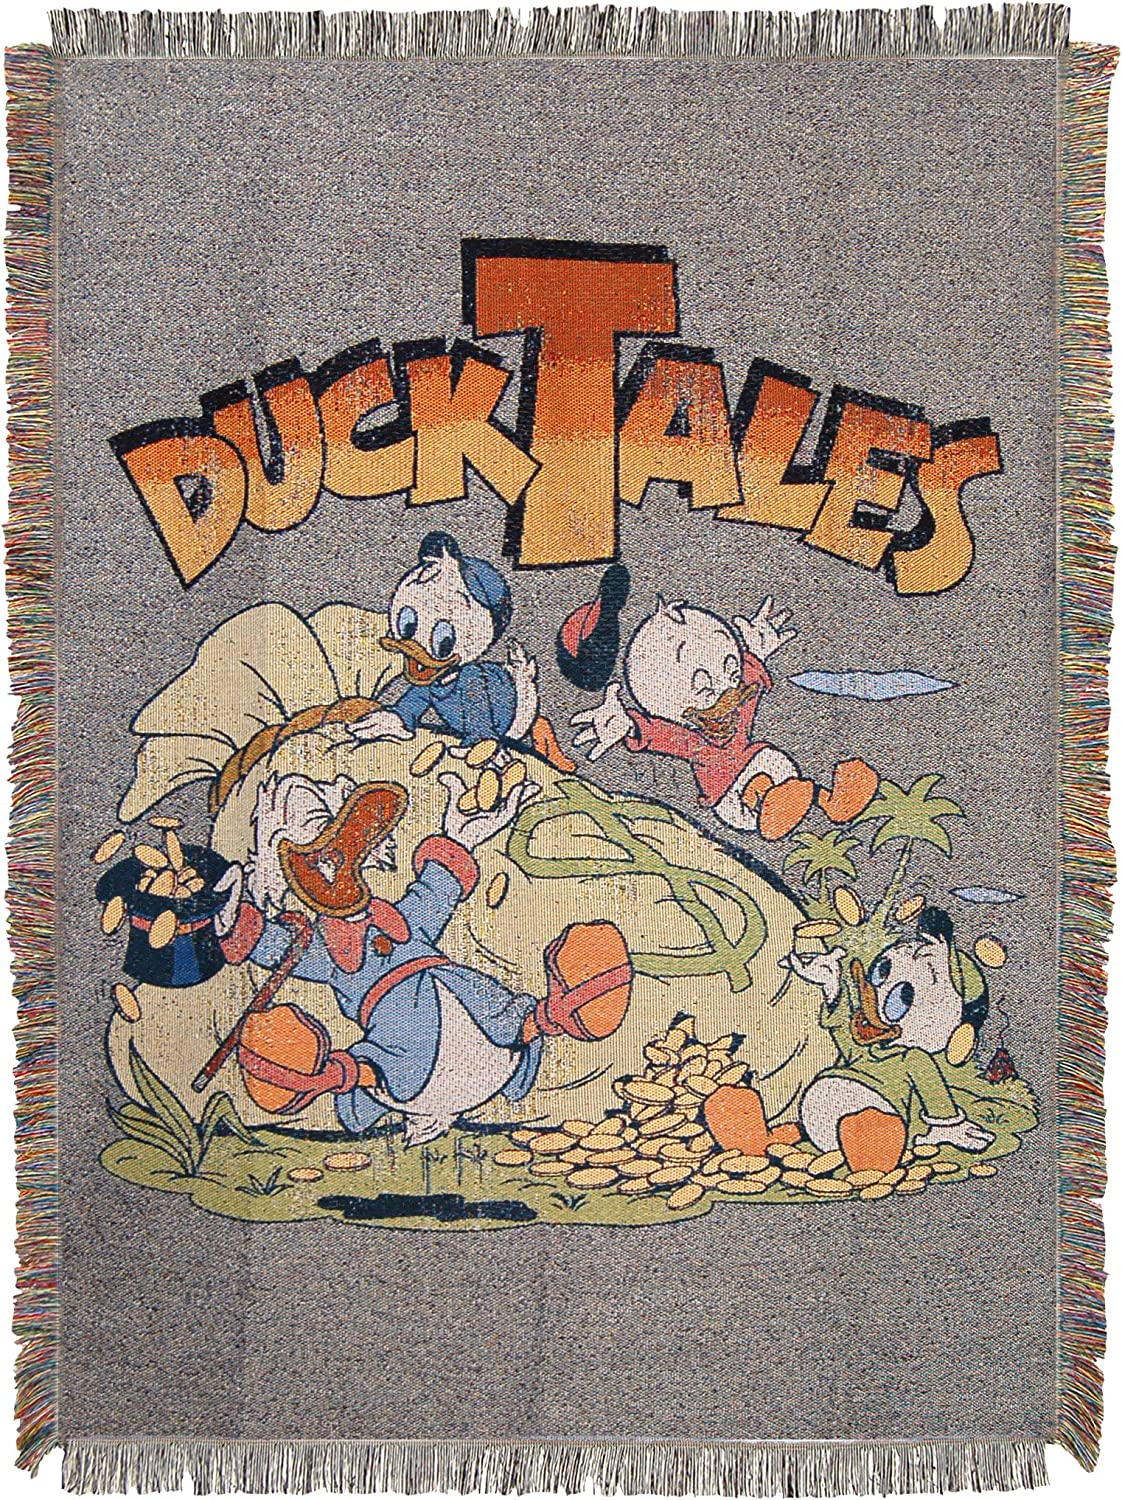 Disneys Duck Tales 48 x 60 Multi Color The Terror Woven Tapestry Throw Blanket